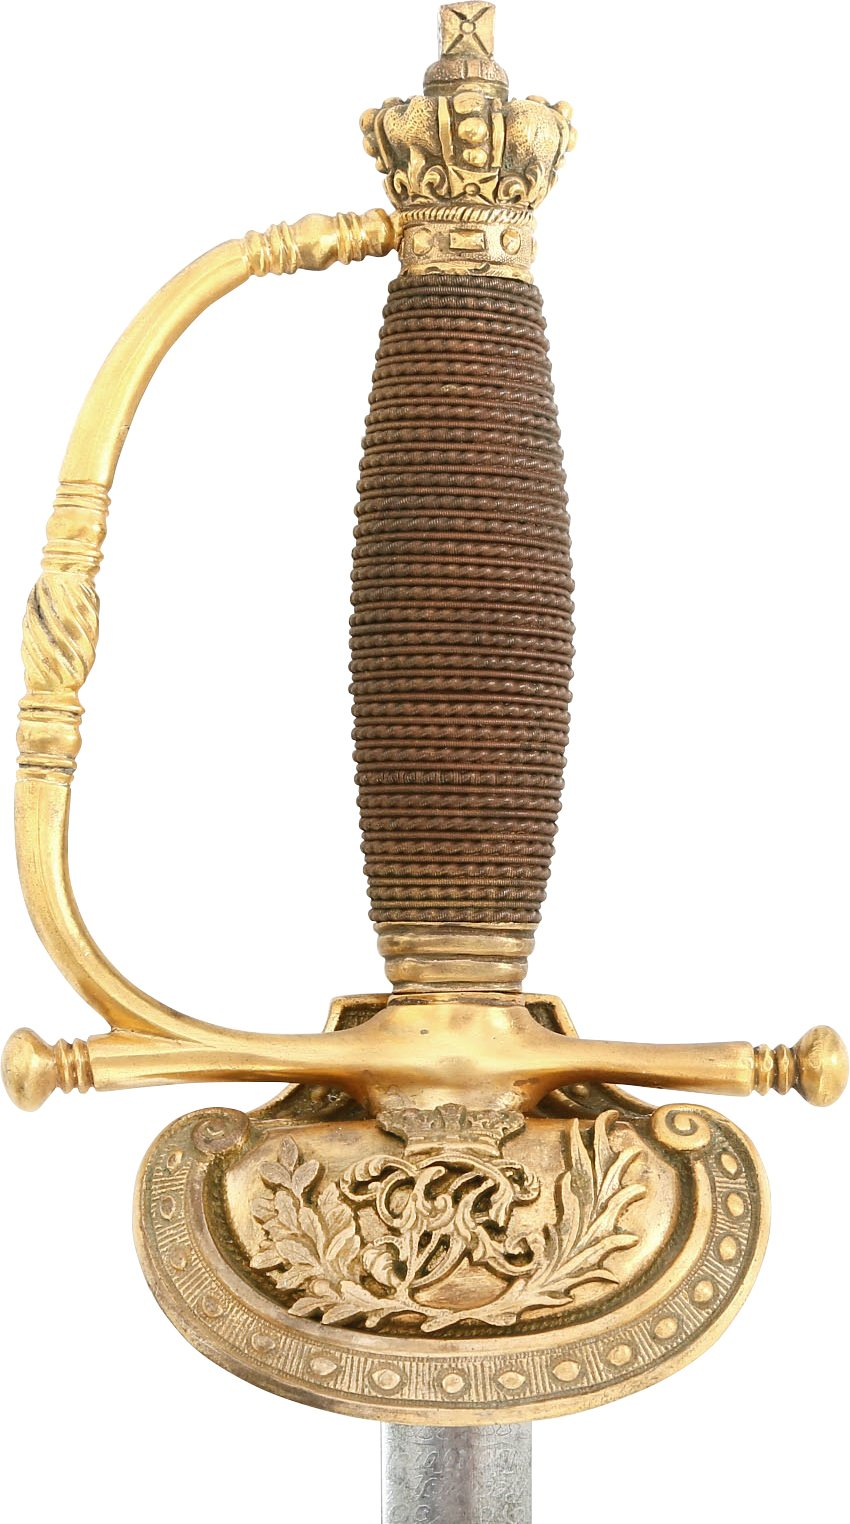 BRITISH COURT SWORD FOR A MEMBER OF THE ROYAL HOUSEHOLD, VICTORIAN PERIOD - Fagan Arms